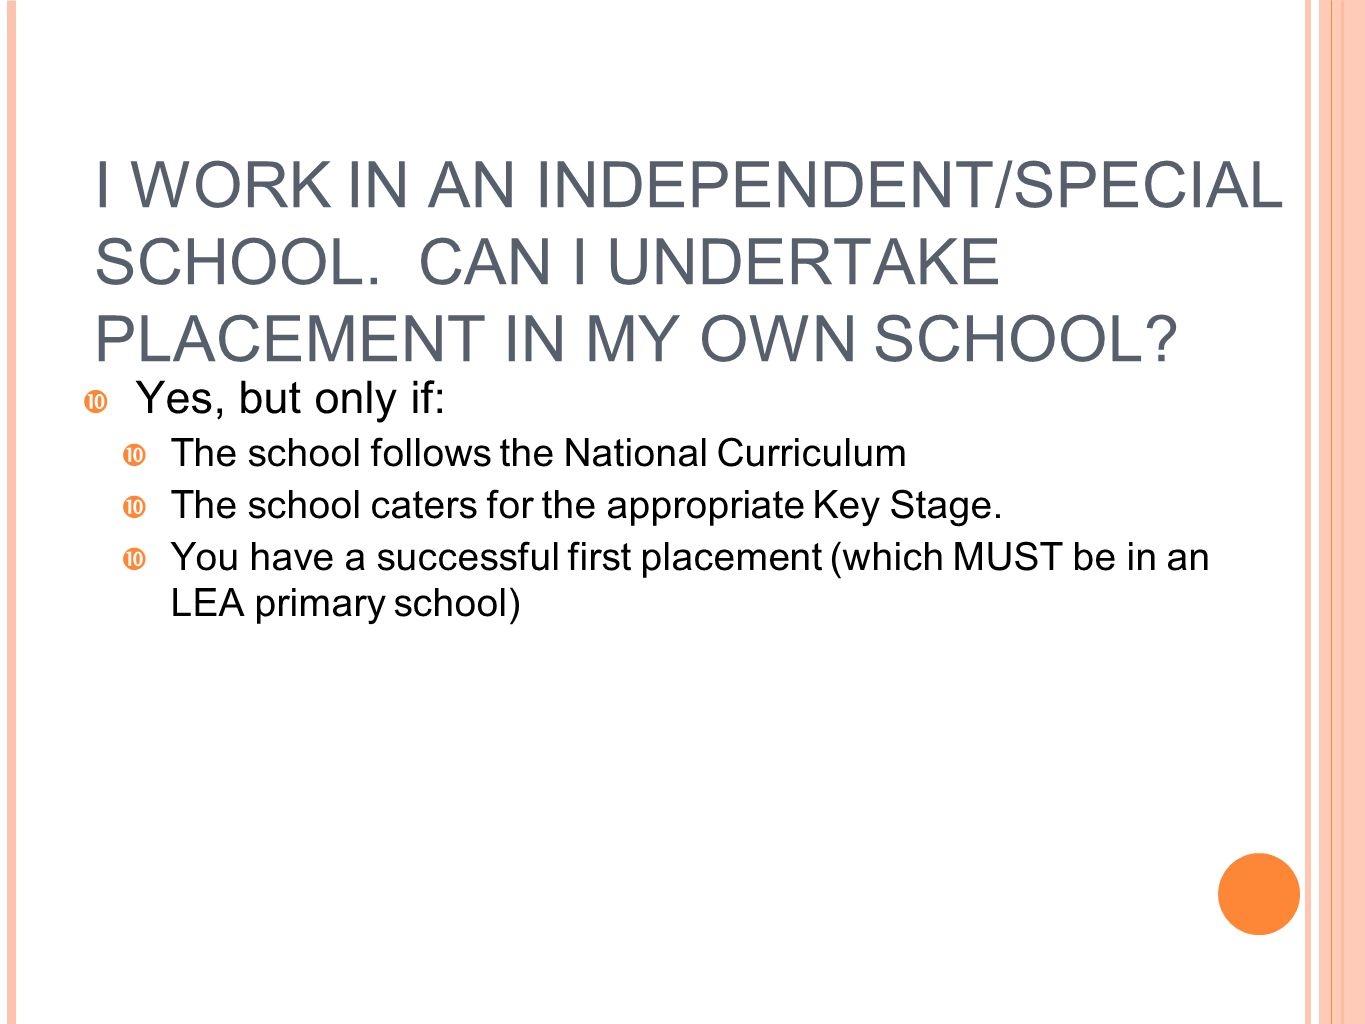 I WORK IN AN INDEPENDENT/SPECIAL SCHOOL